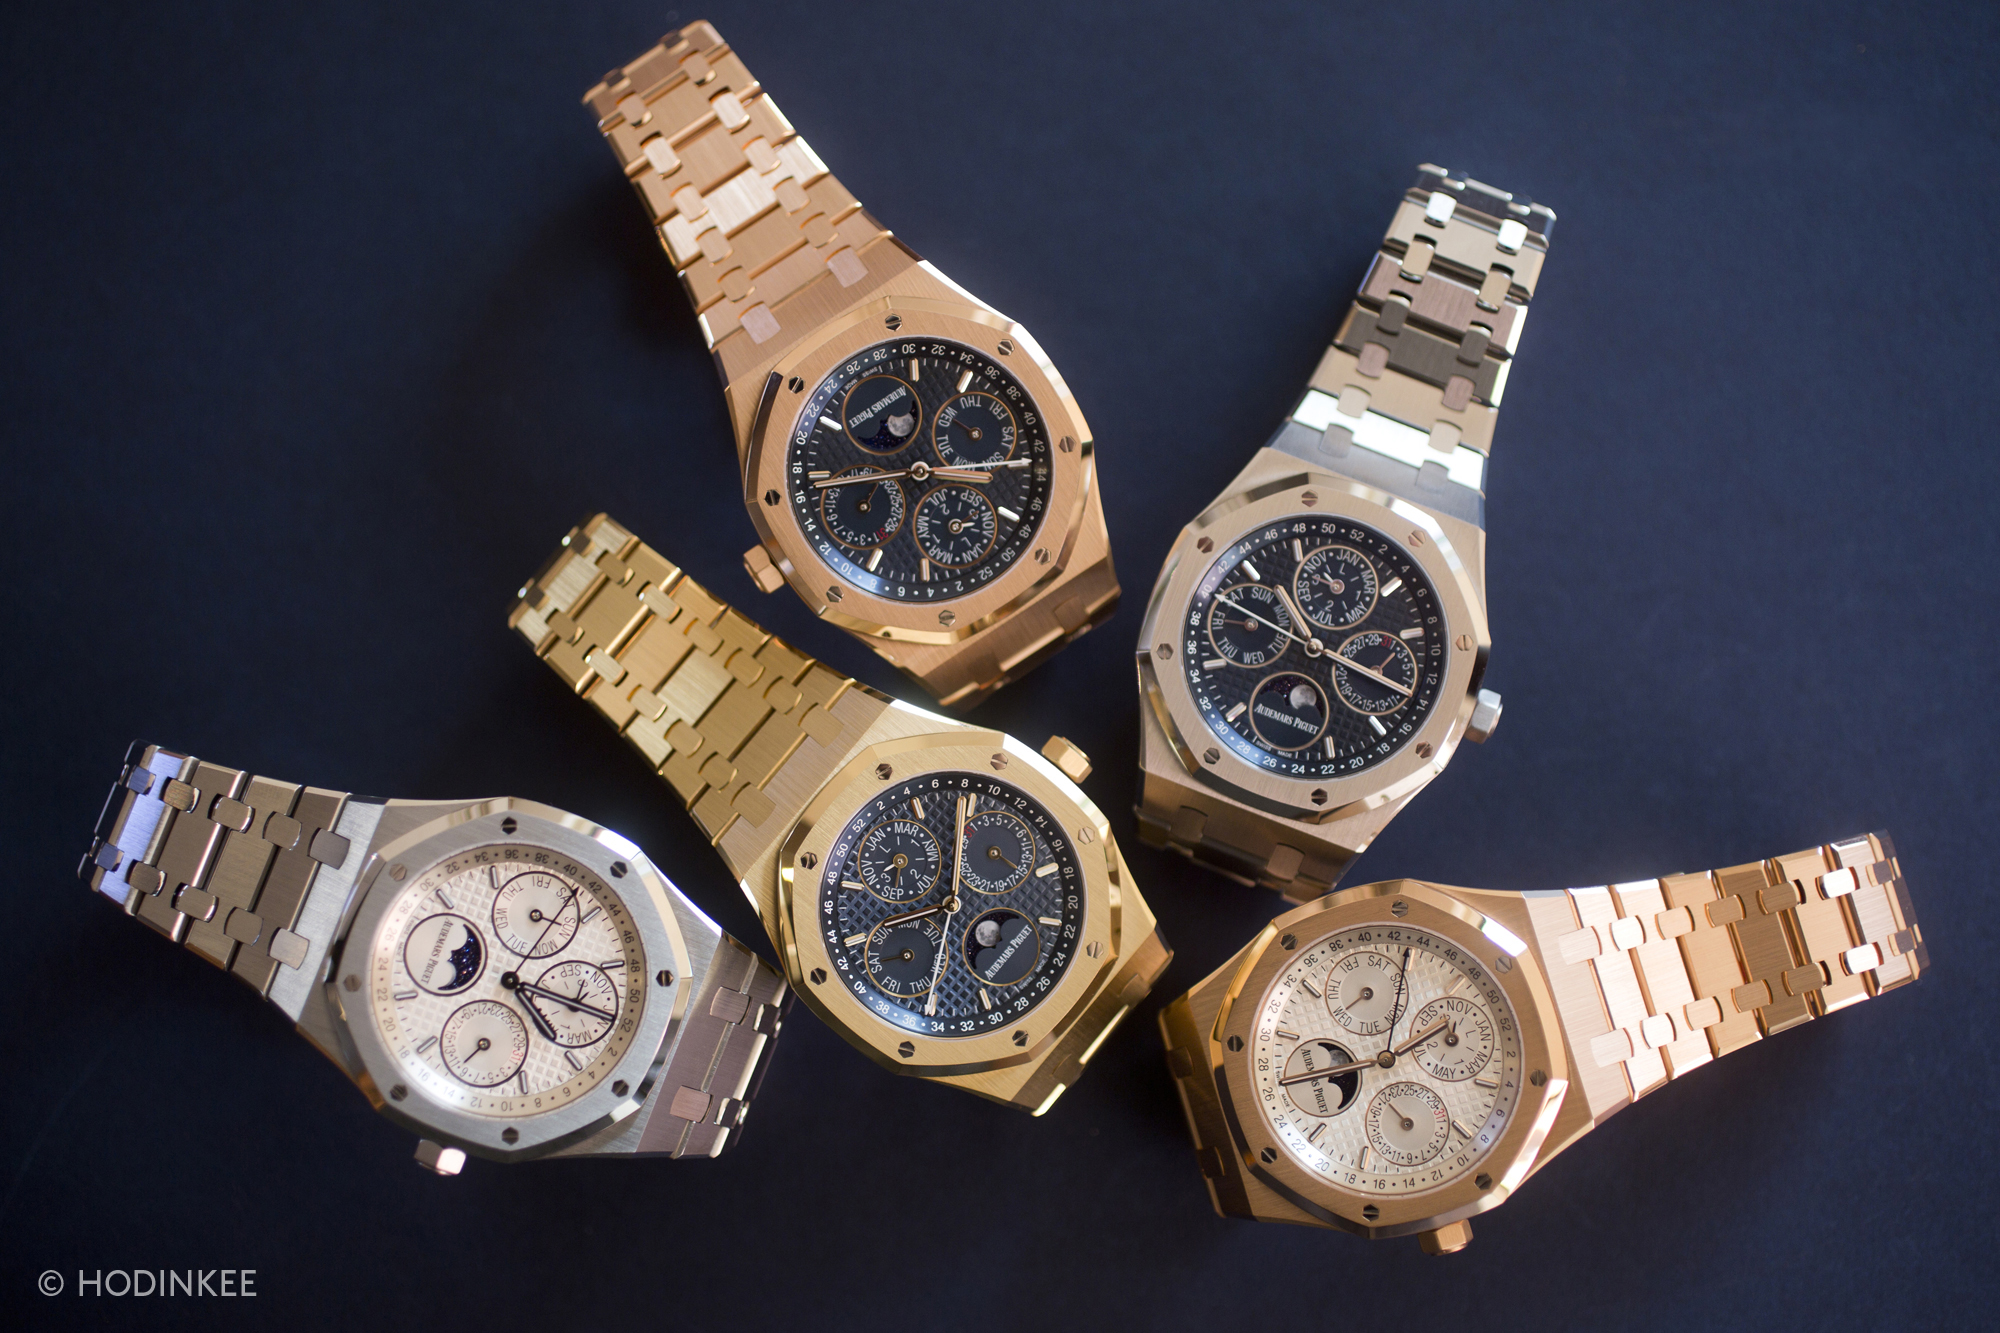 Introducing The Audemars Piguet Perpetual Calendar 26574 In Yellow